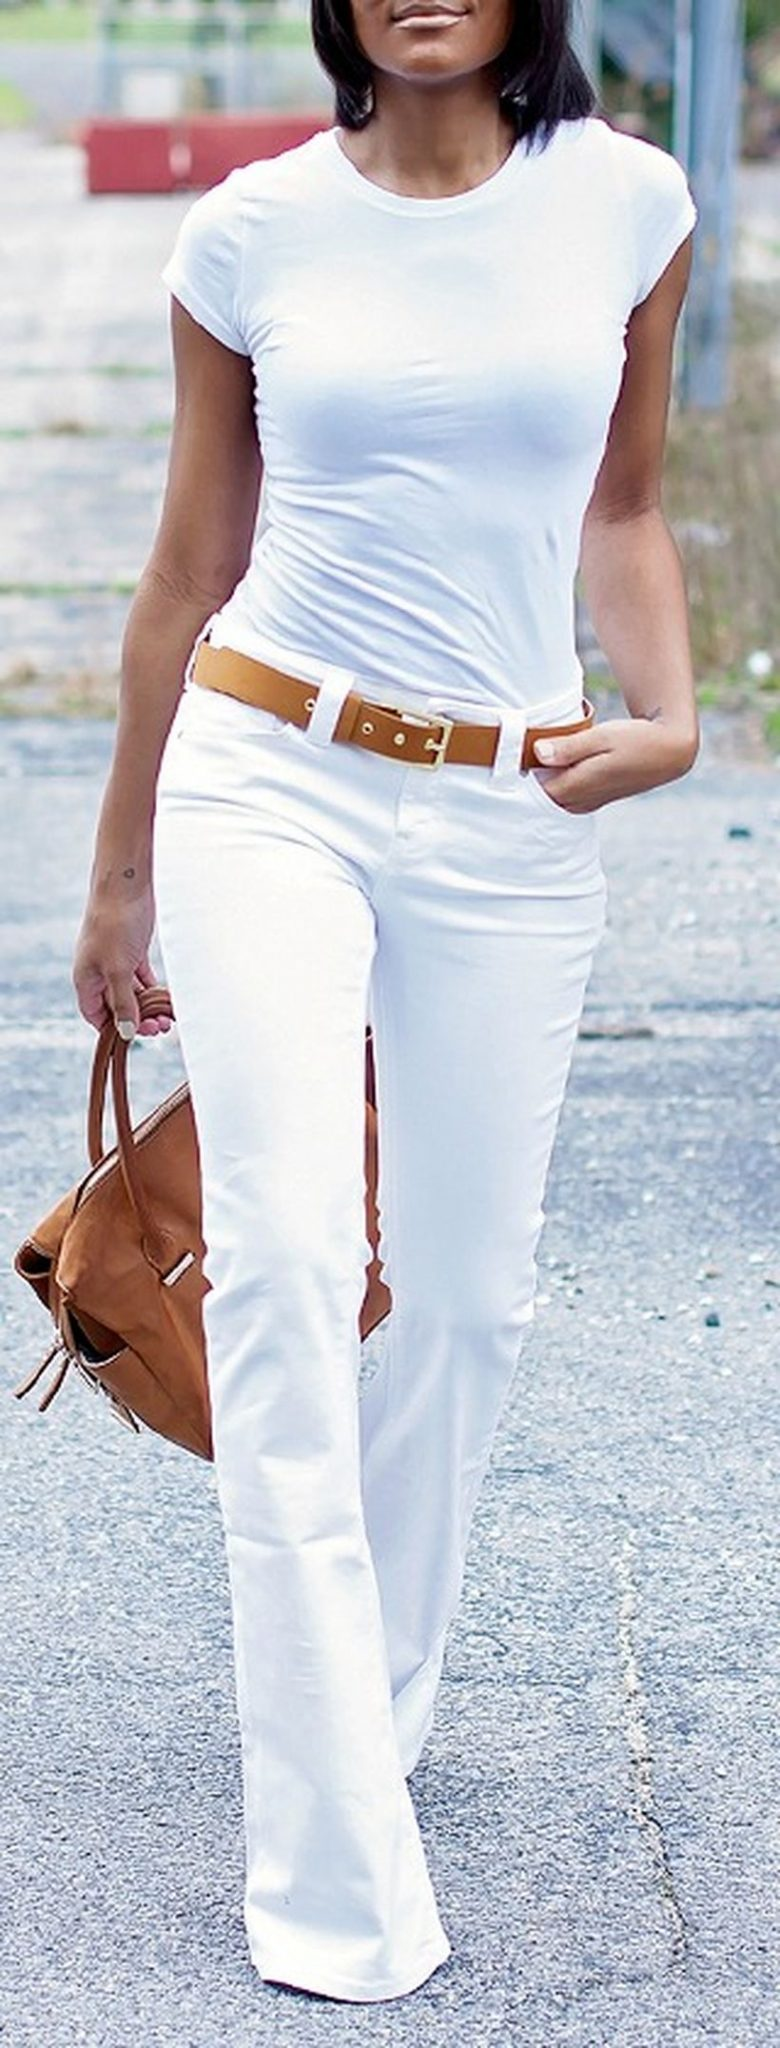 Perfect ways to wear white denim jeans outfits 72